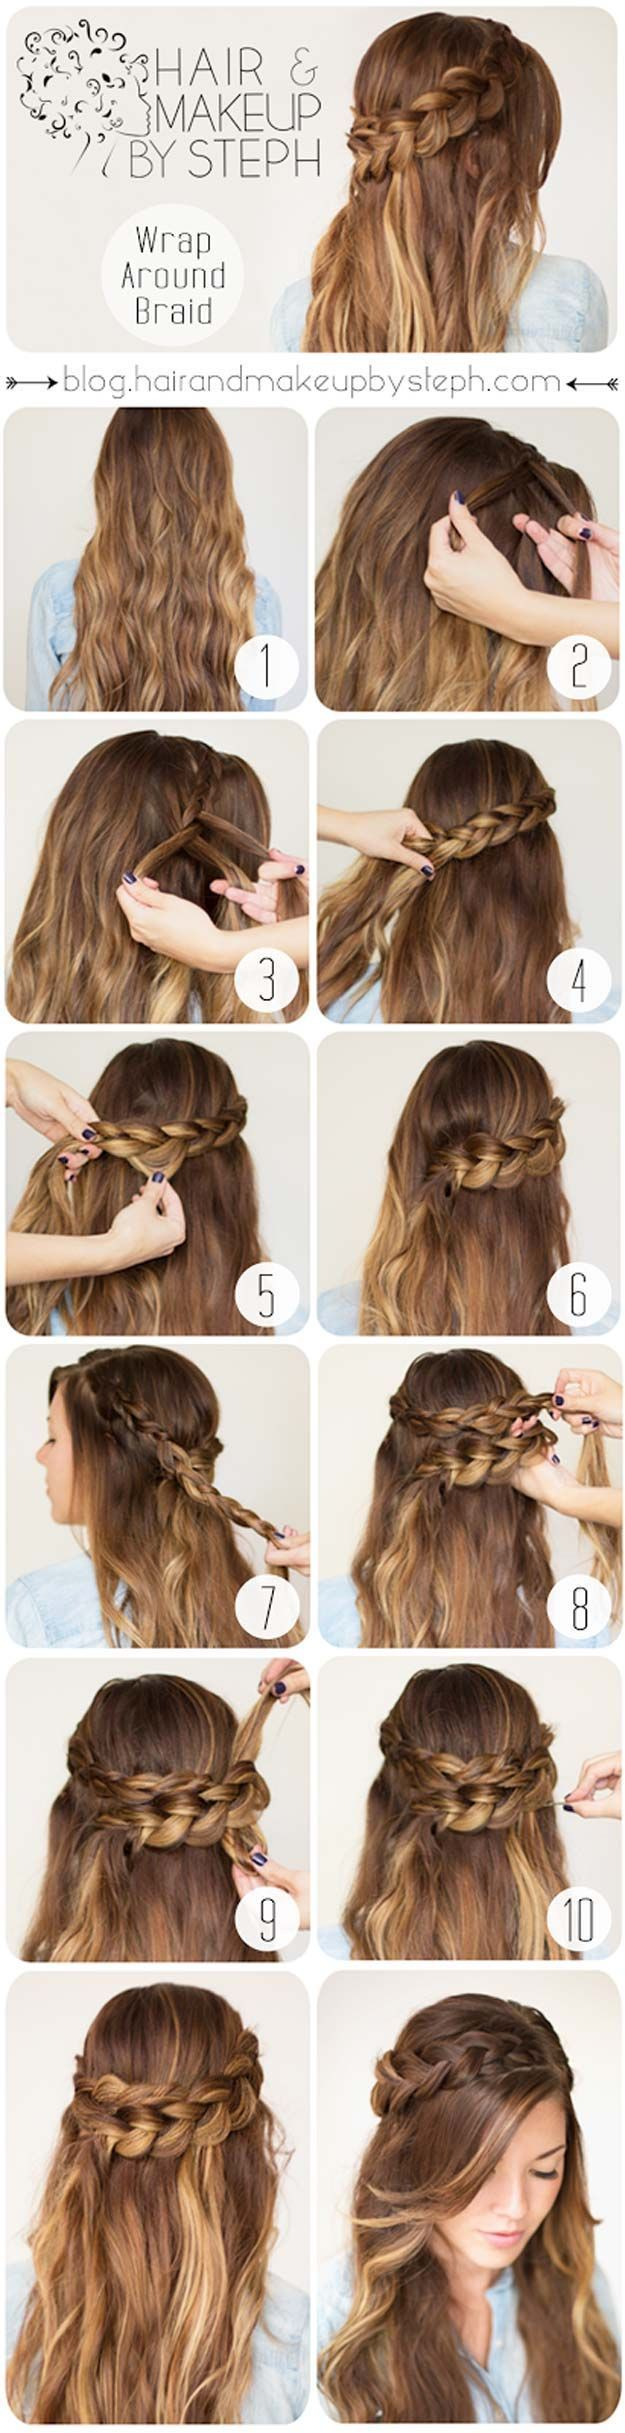 1615 best hairstyle tutorials images on pinterest | hairstyles